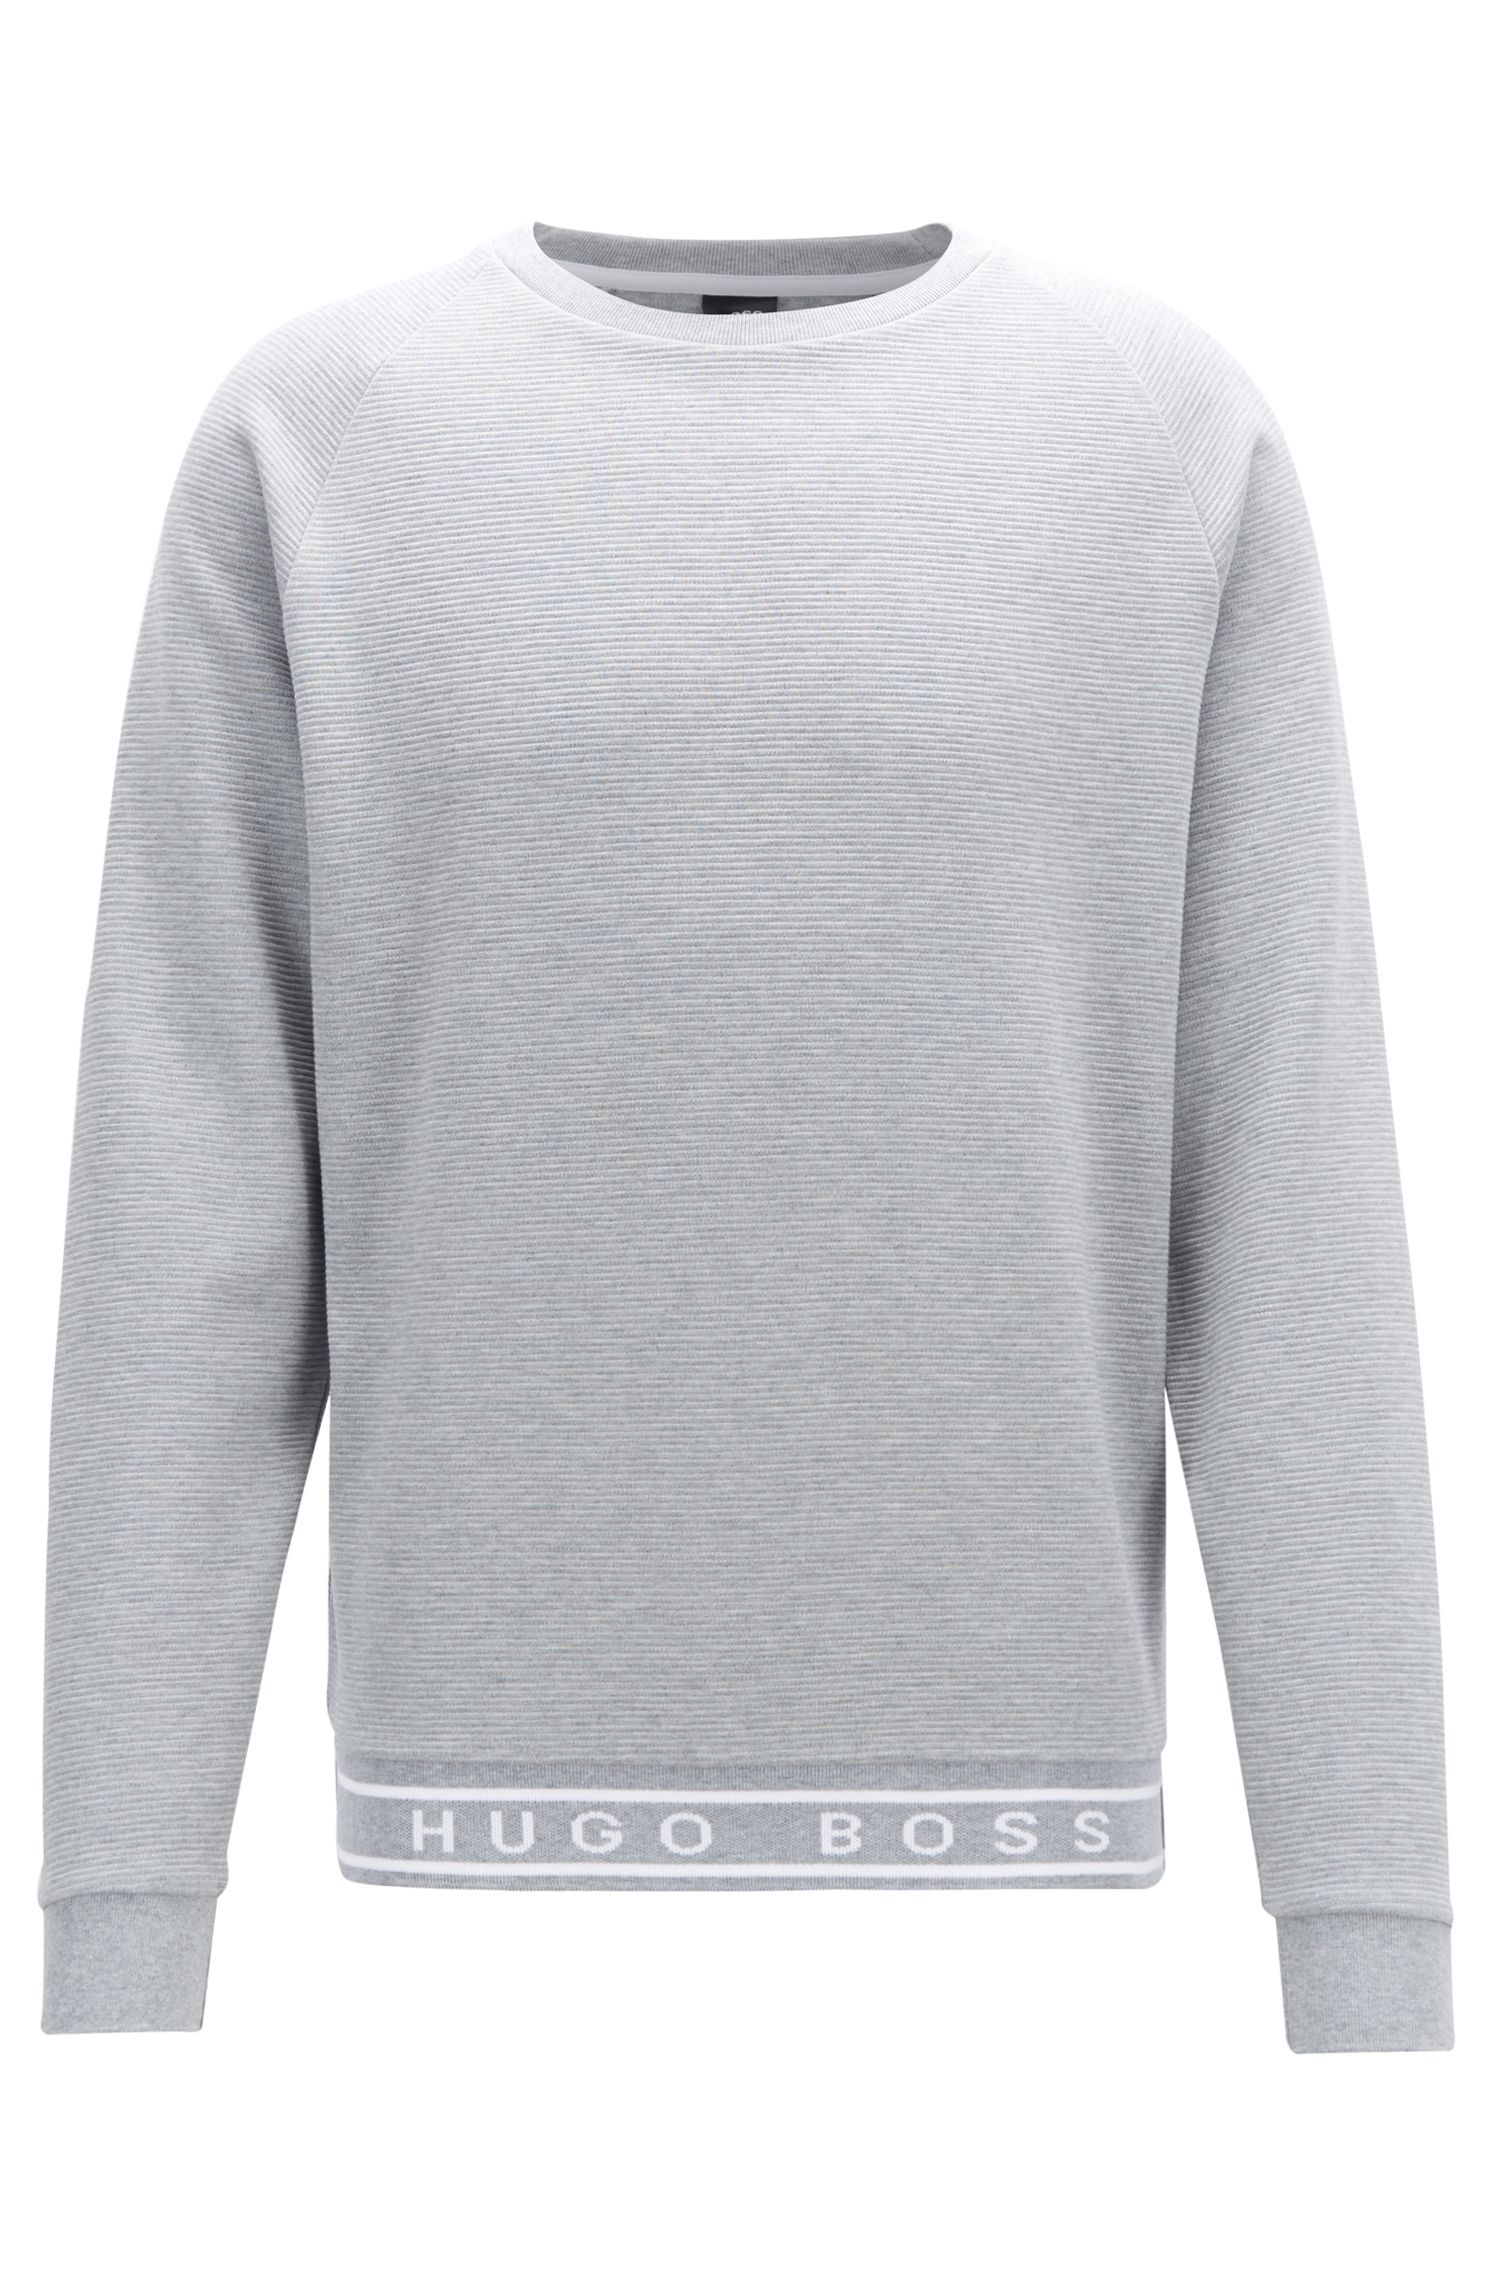 Logo-hem sweatshirt in mélange cotton interlock, Grey